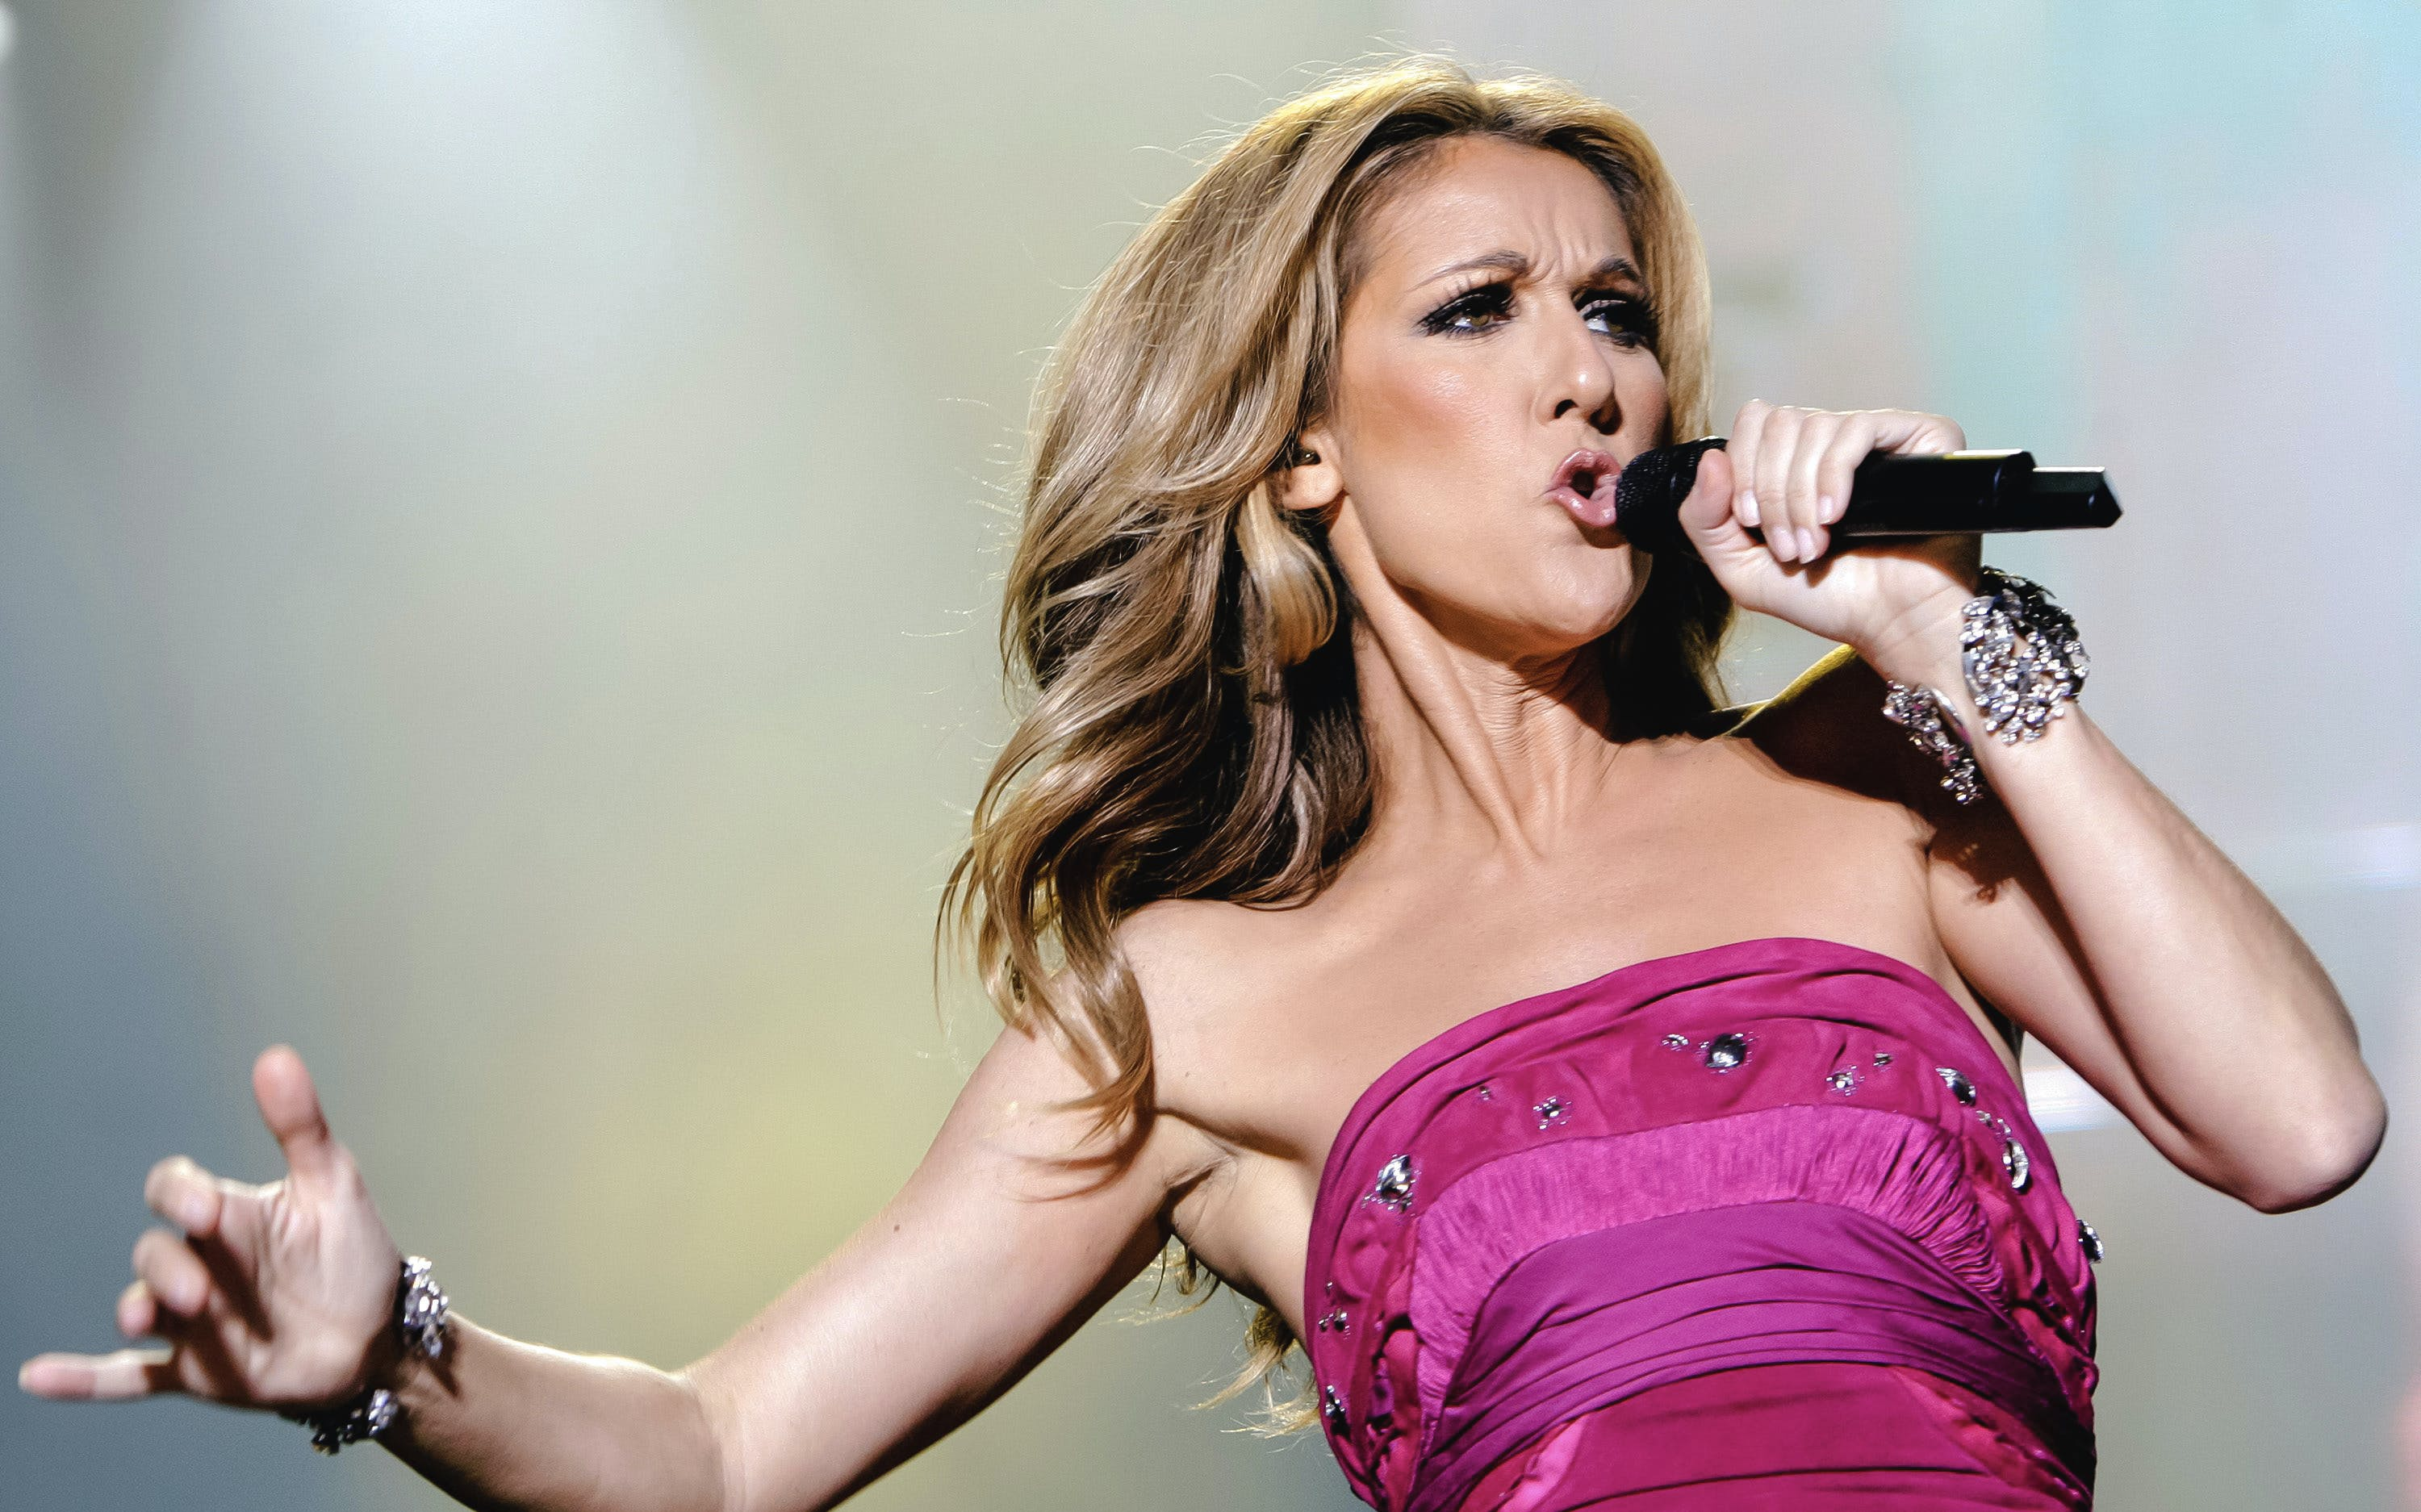 Best Vegas Shows - Celine Dion